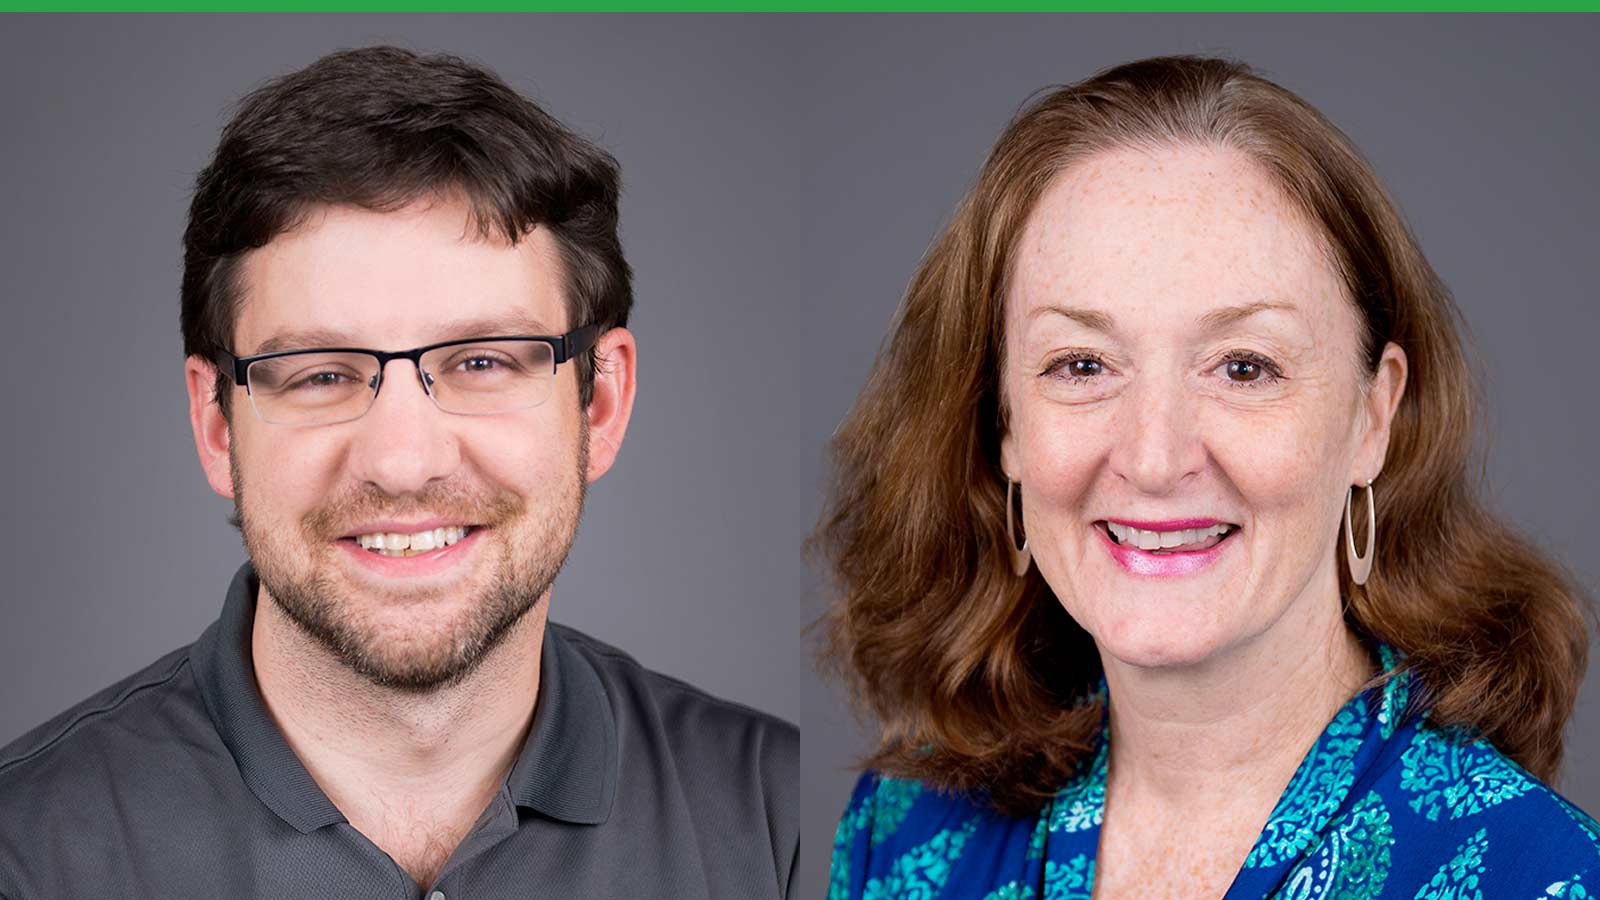 Campus Labs Welcomes Two Colleagues